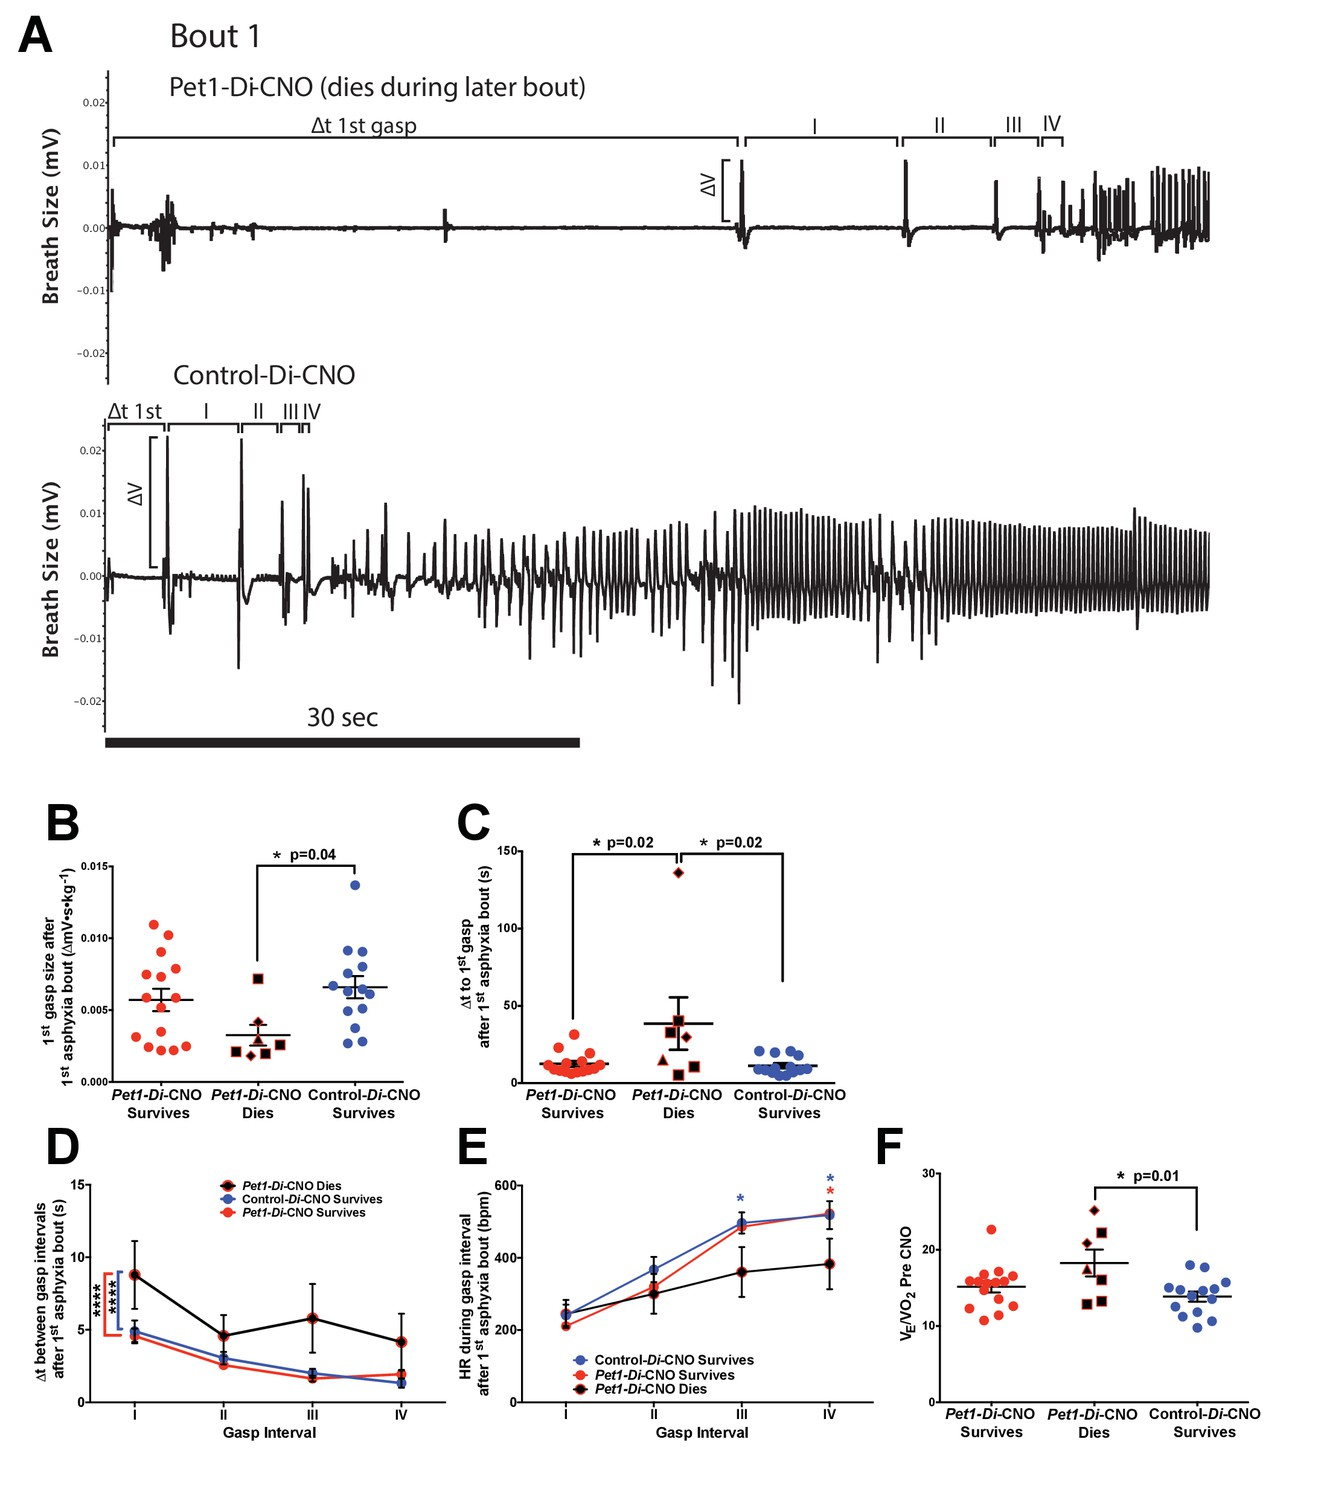 Acute Perturbation Of Pet1 Neuron Activity In Neonatal Mice Impairs Design A Laserdiode Driver For Range Finder Applications Ee Times Di Cno Pups Demonstrate Disordered Gasp Response To The Initial Asphyxic Bout And Induced Apnea